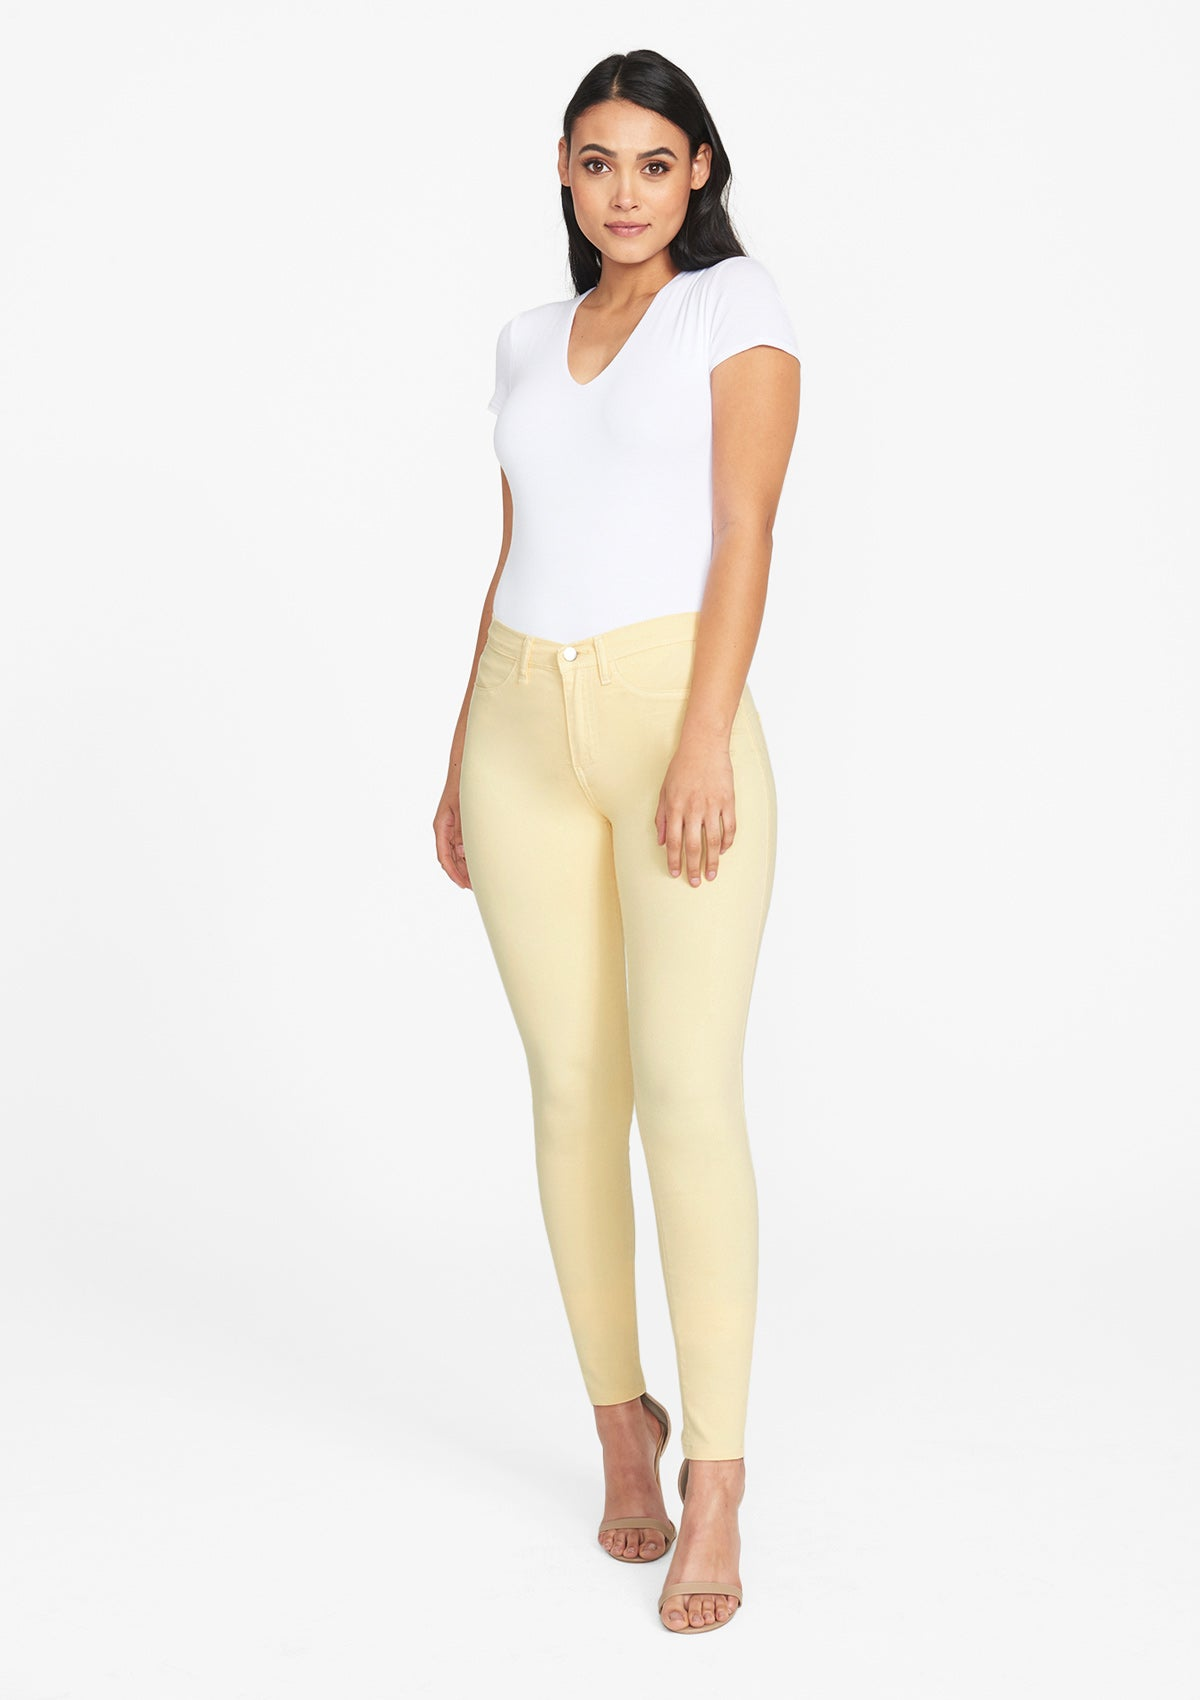 Alloy Apparel Tall Stretch Twill Plus Size Jean Leggings for Women in Sunlight Size 4 length 37   Cotton